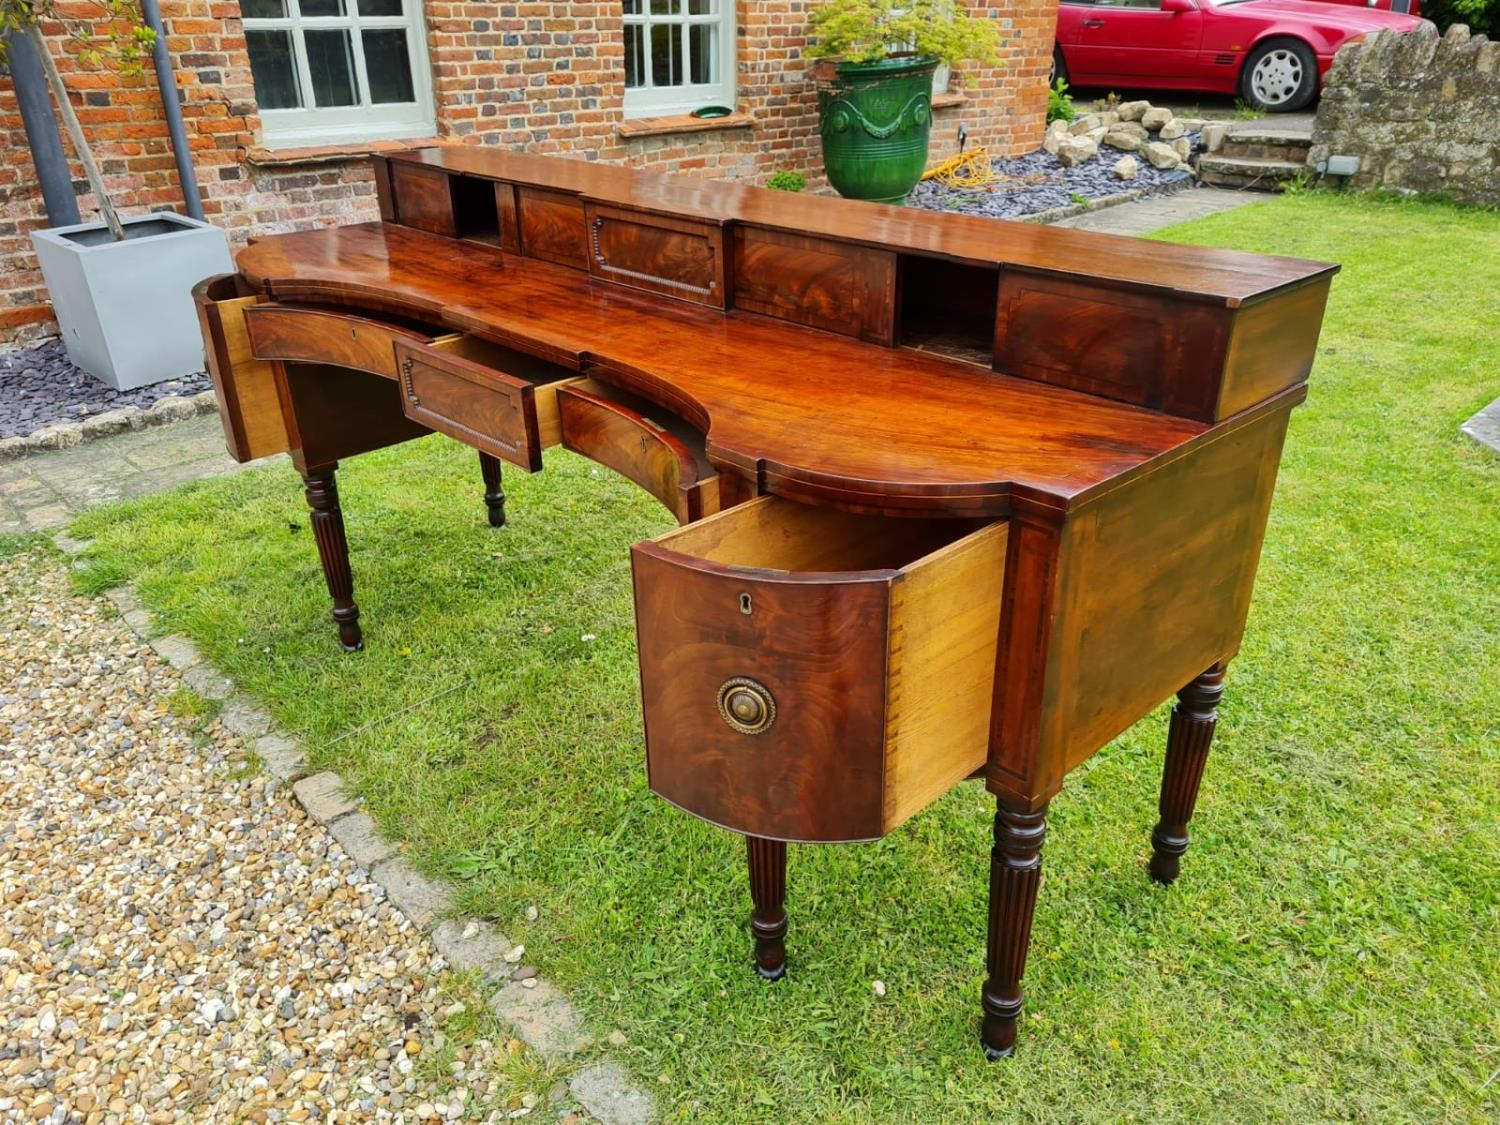 A LARGE 18TH CENTURY MAHOGANY SIDEBOARD With a stepped gallery shelf above two inverted drawers - Image 5 of 7